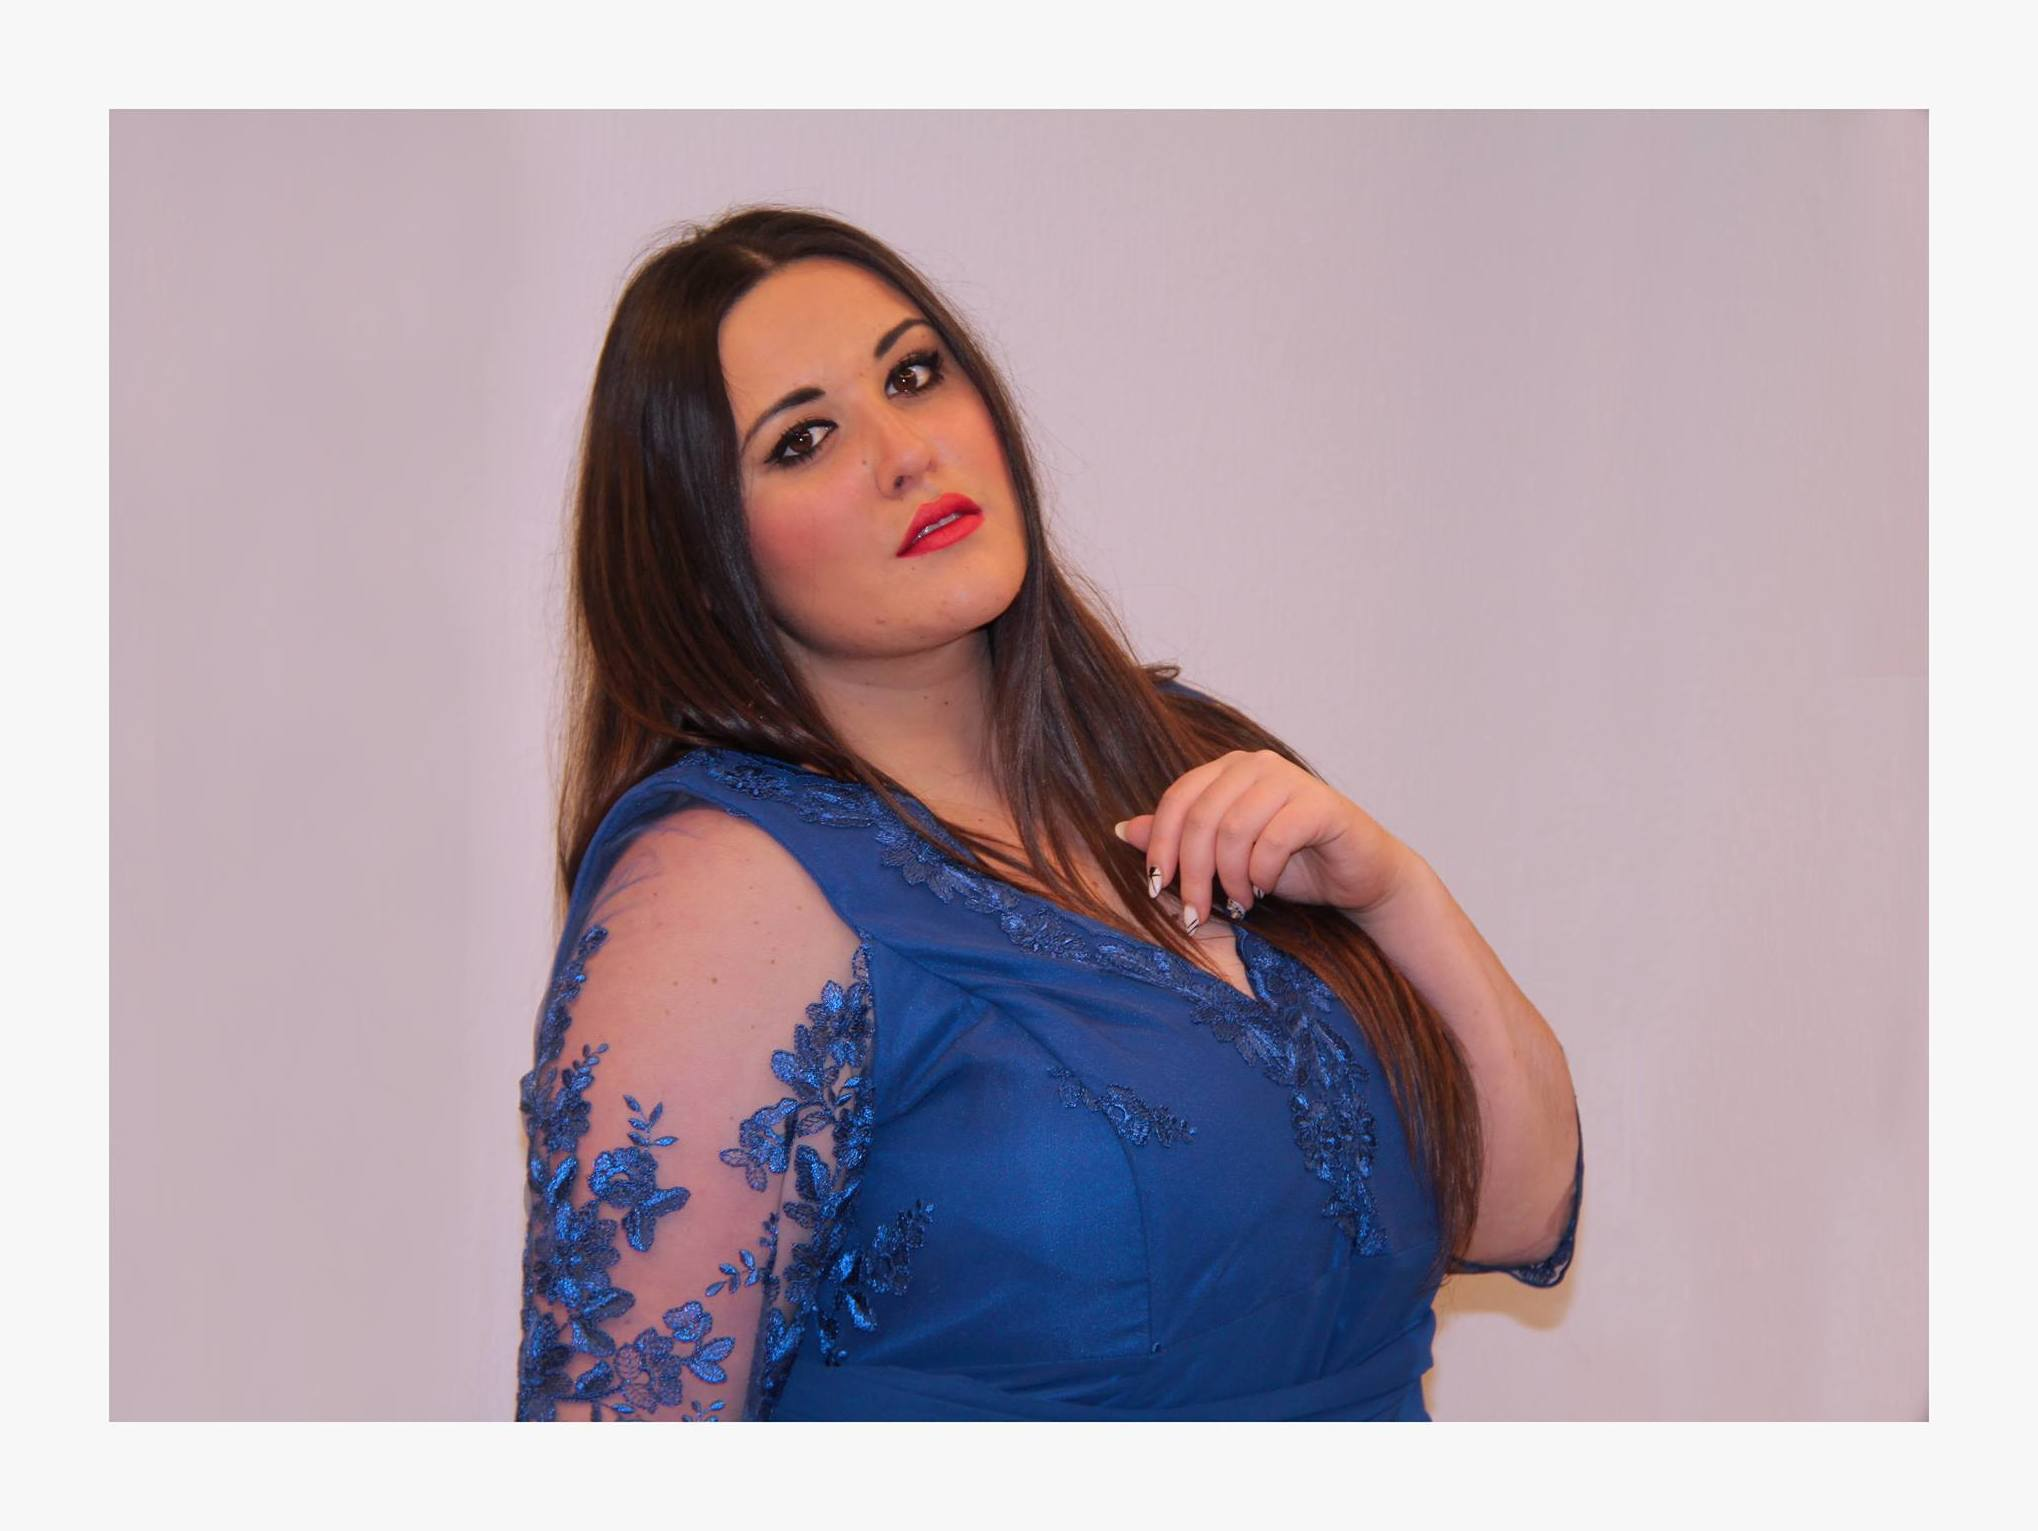 La Miriam Martinez ha obtingut el Premi Popular a la Curvy fashion model. }}